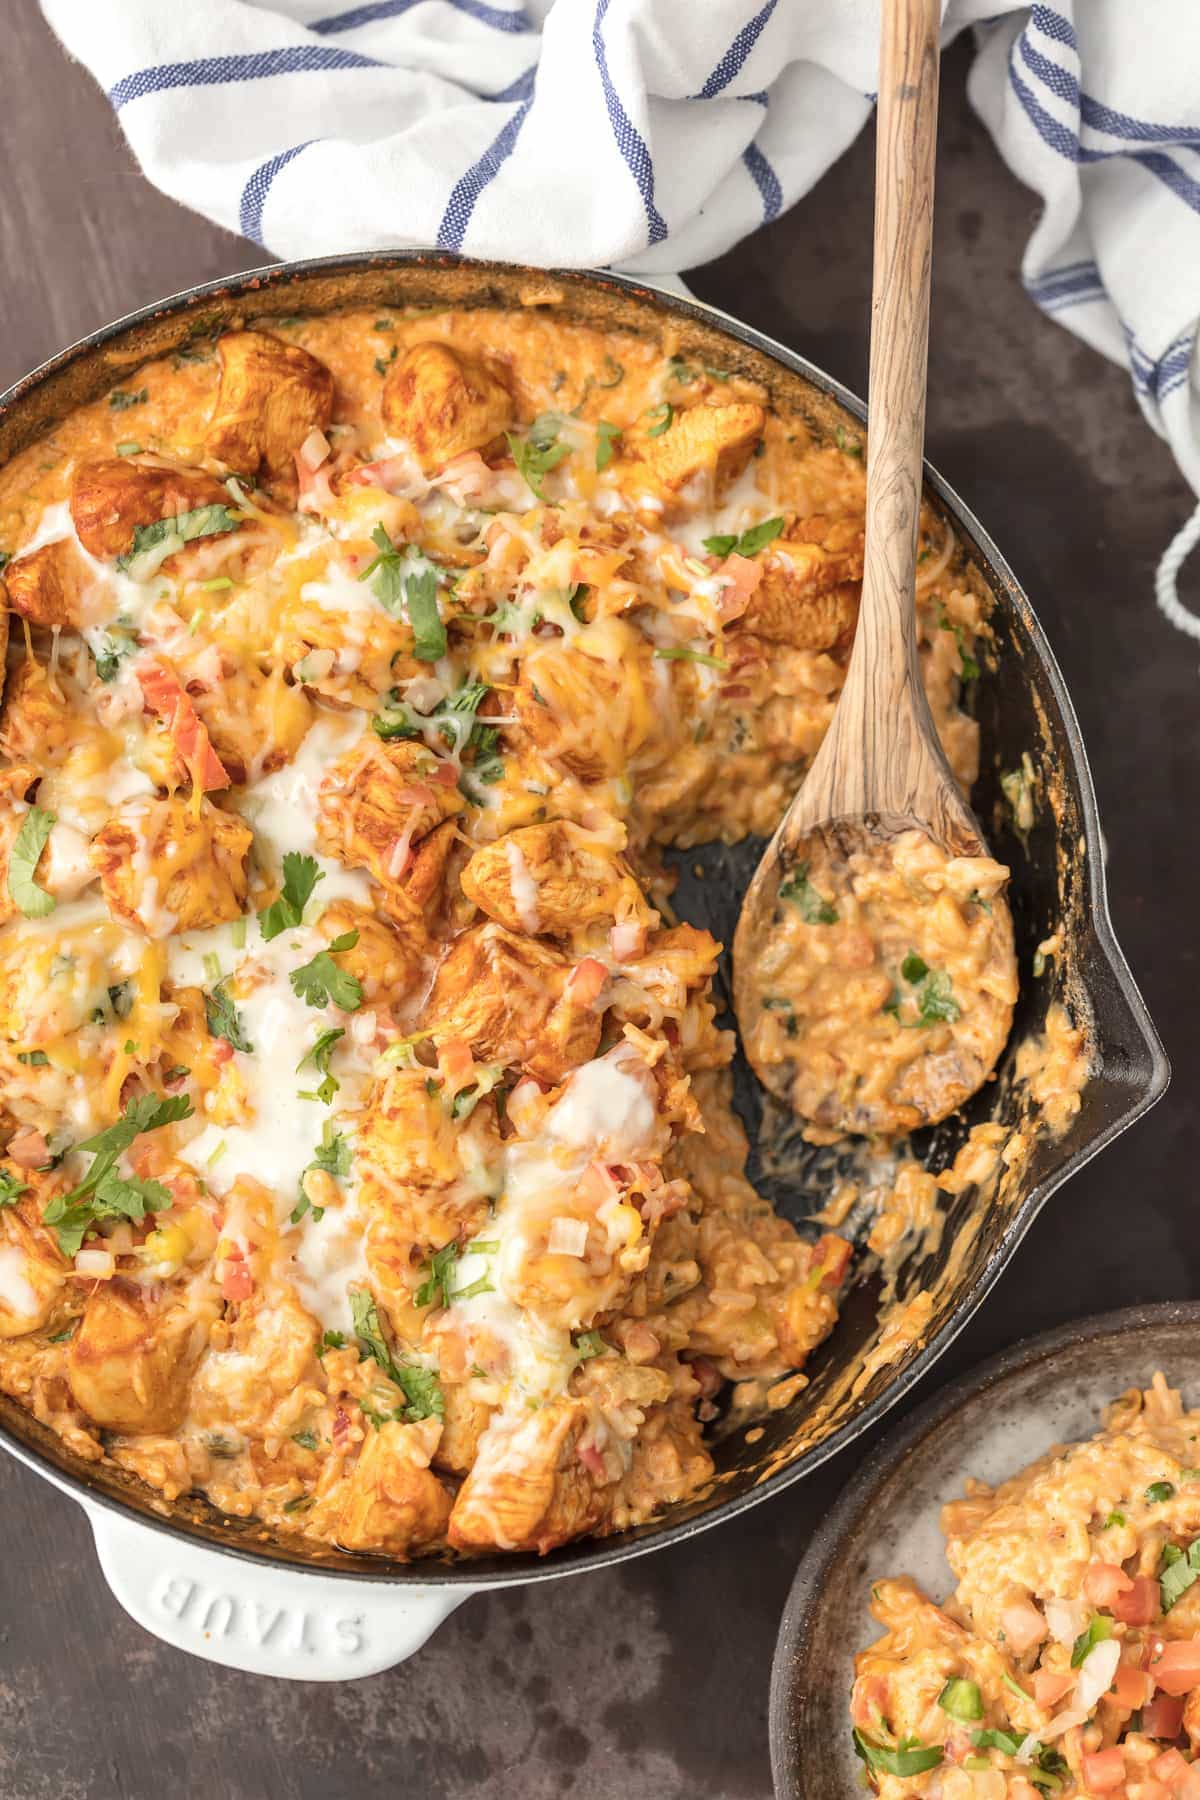 Chicken con Queso (Skillet Queso Chicken) is the ultimate one pot meal! Cheesy rice loaded with cilantro, pico de gallo, green chiles, and cream topped with taco spiced chicken. This one pan recipe is so cheesy, easy, and amazing. I used to always order Pollo con Queso at Mexican Restaurants and now I can easily make it at home. Chicken and Cheese...is there anything better?